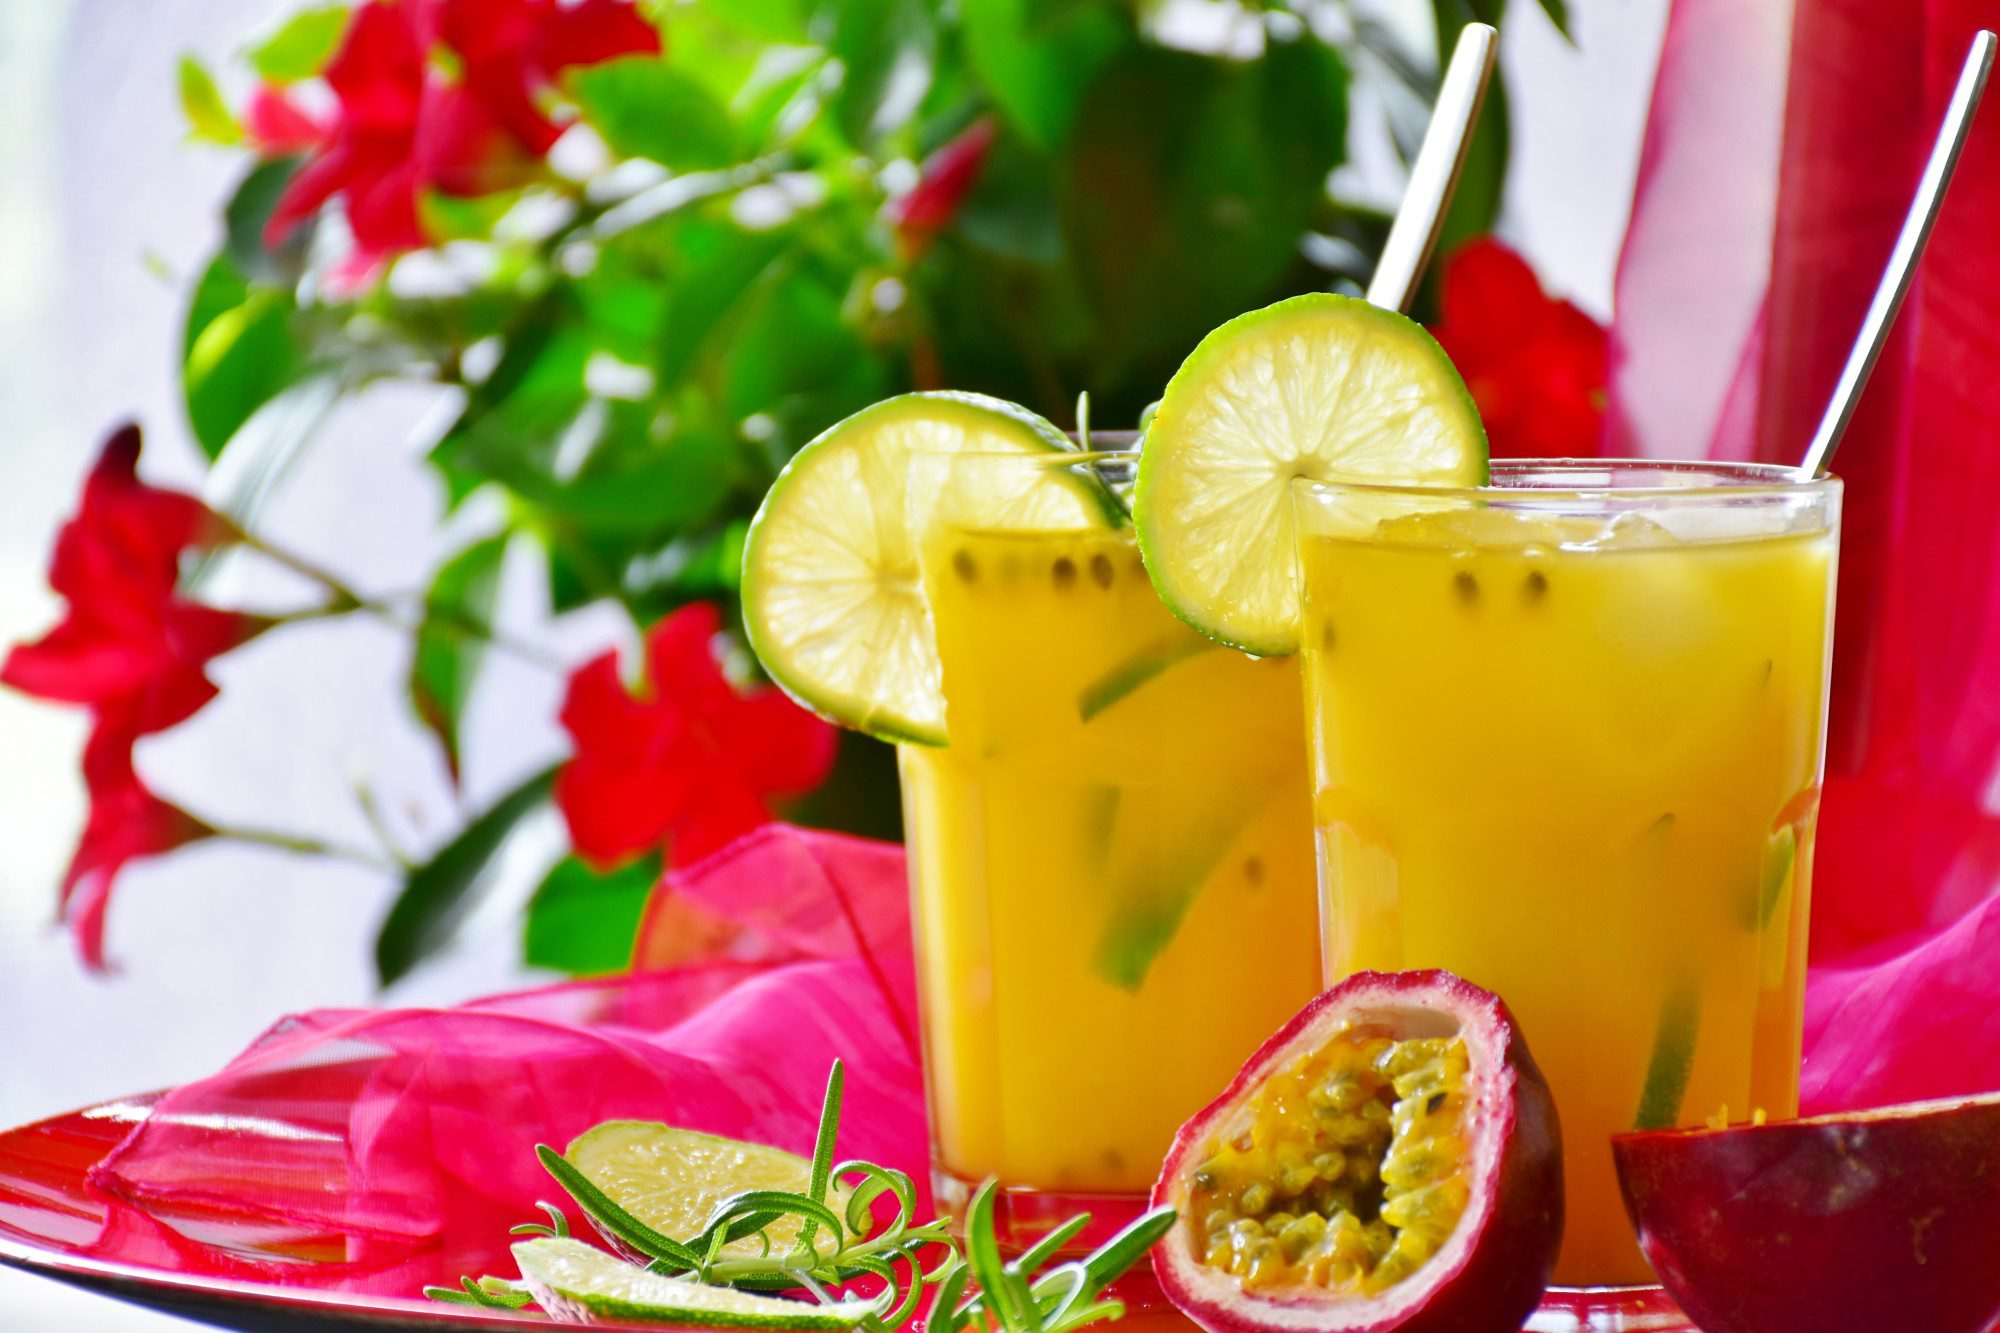 Two glasses of passion fruit drinks with lime an straws